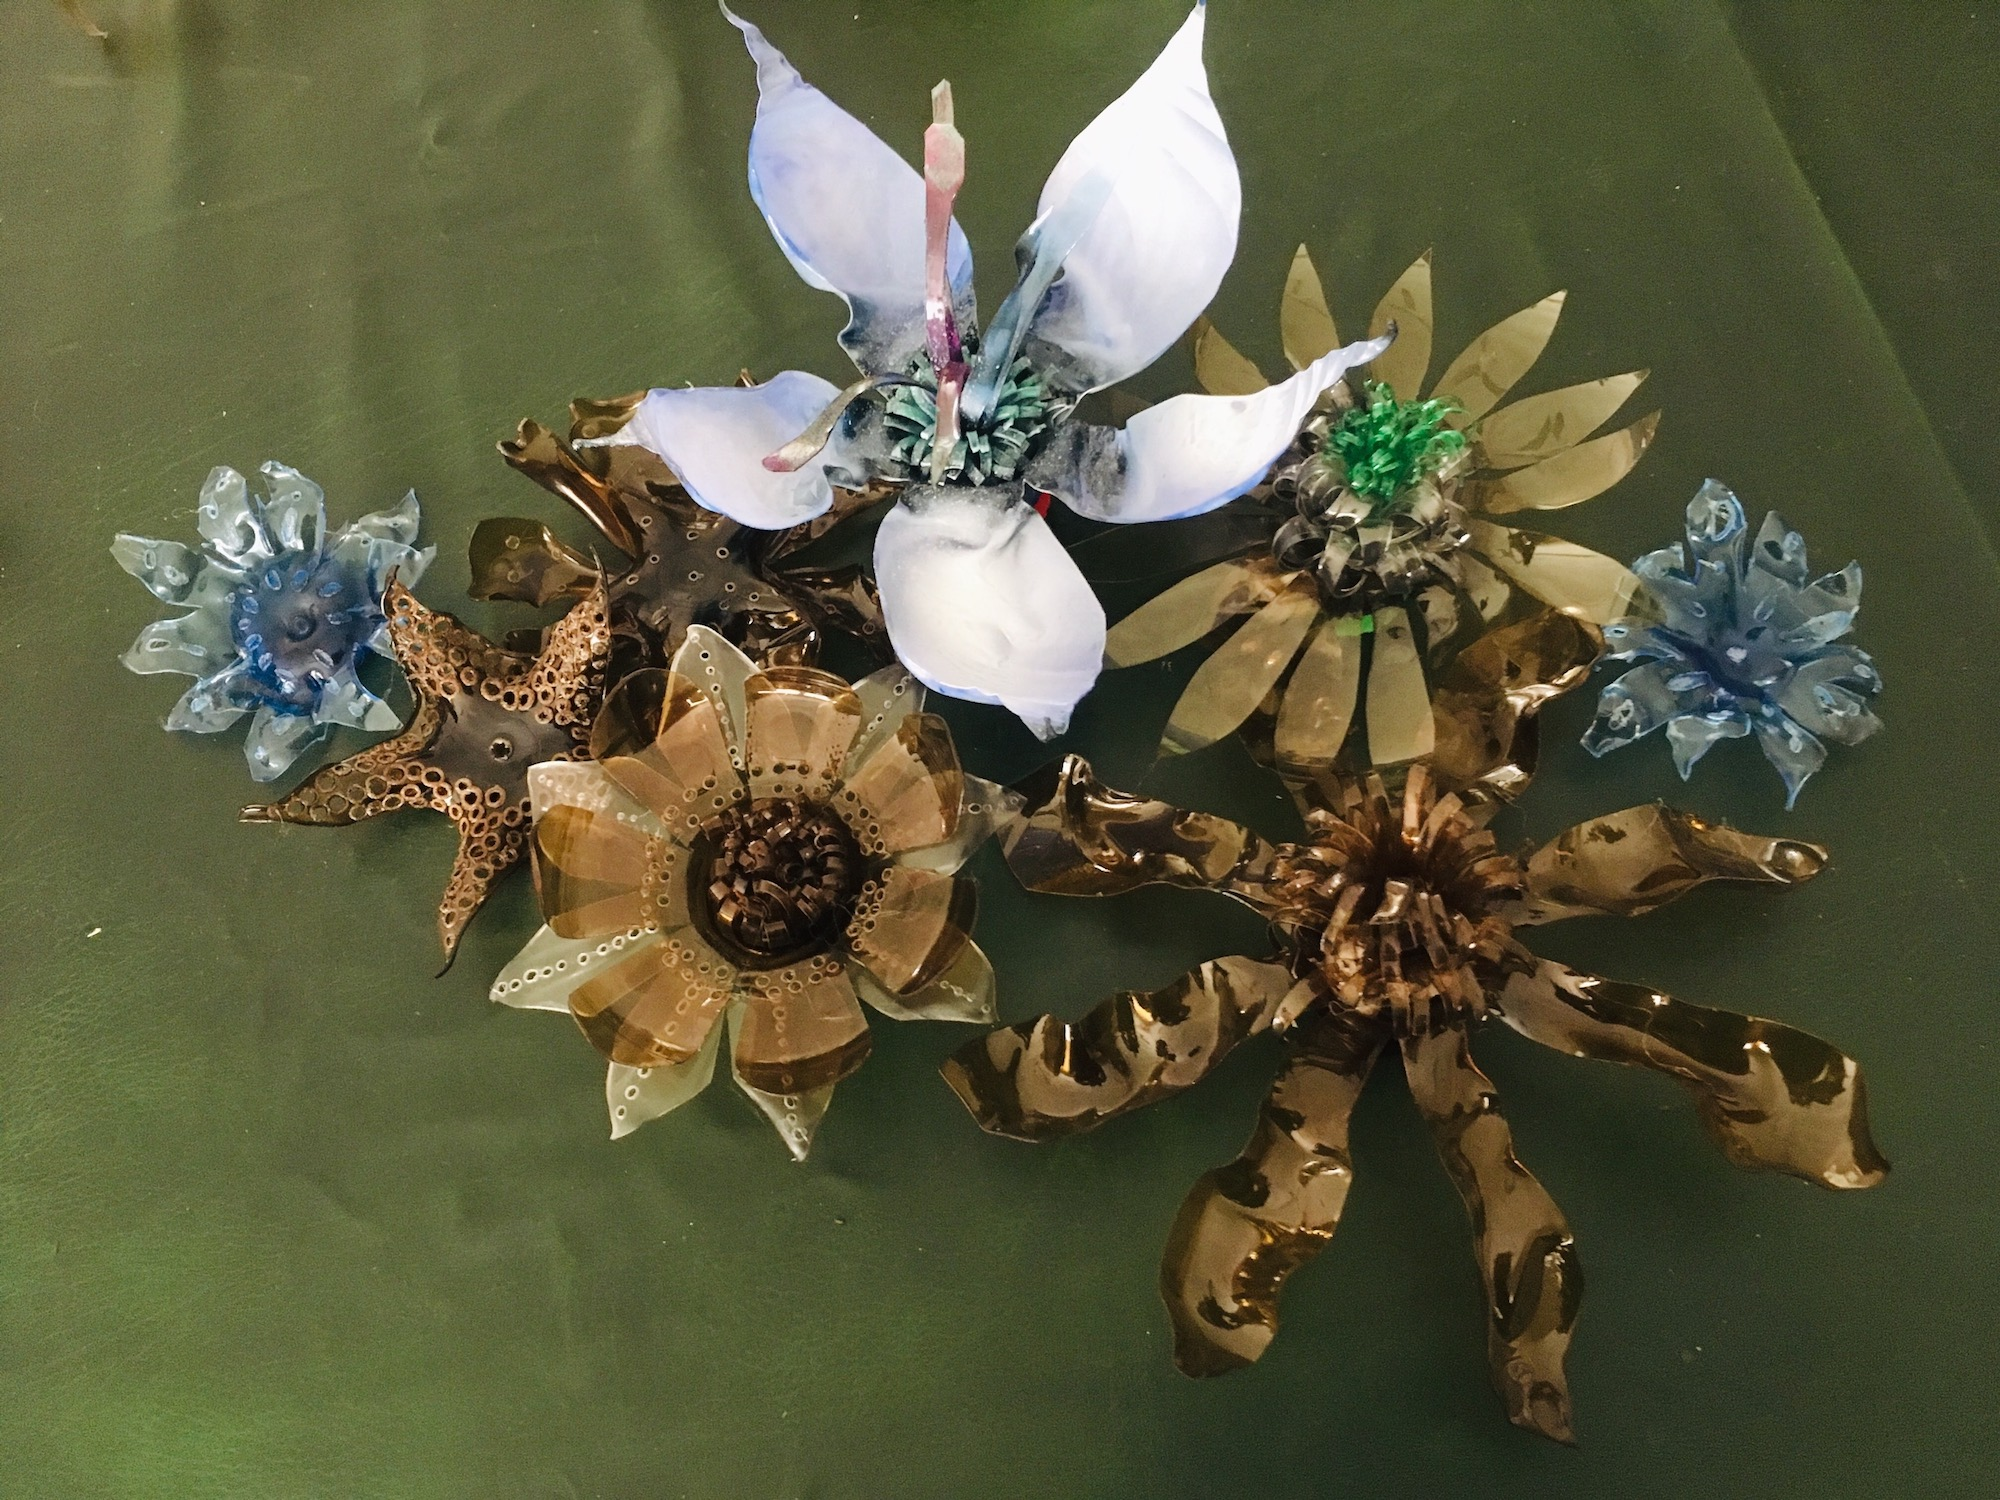 Christmas decorations made by Dreamcatcher Foundation